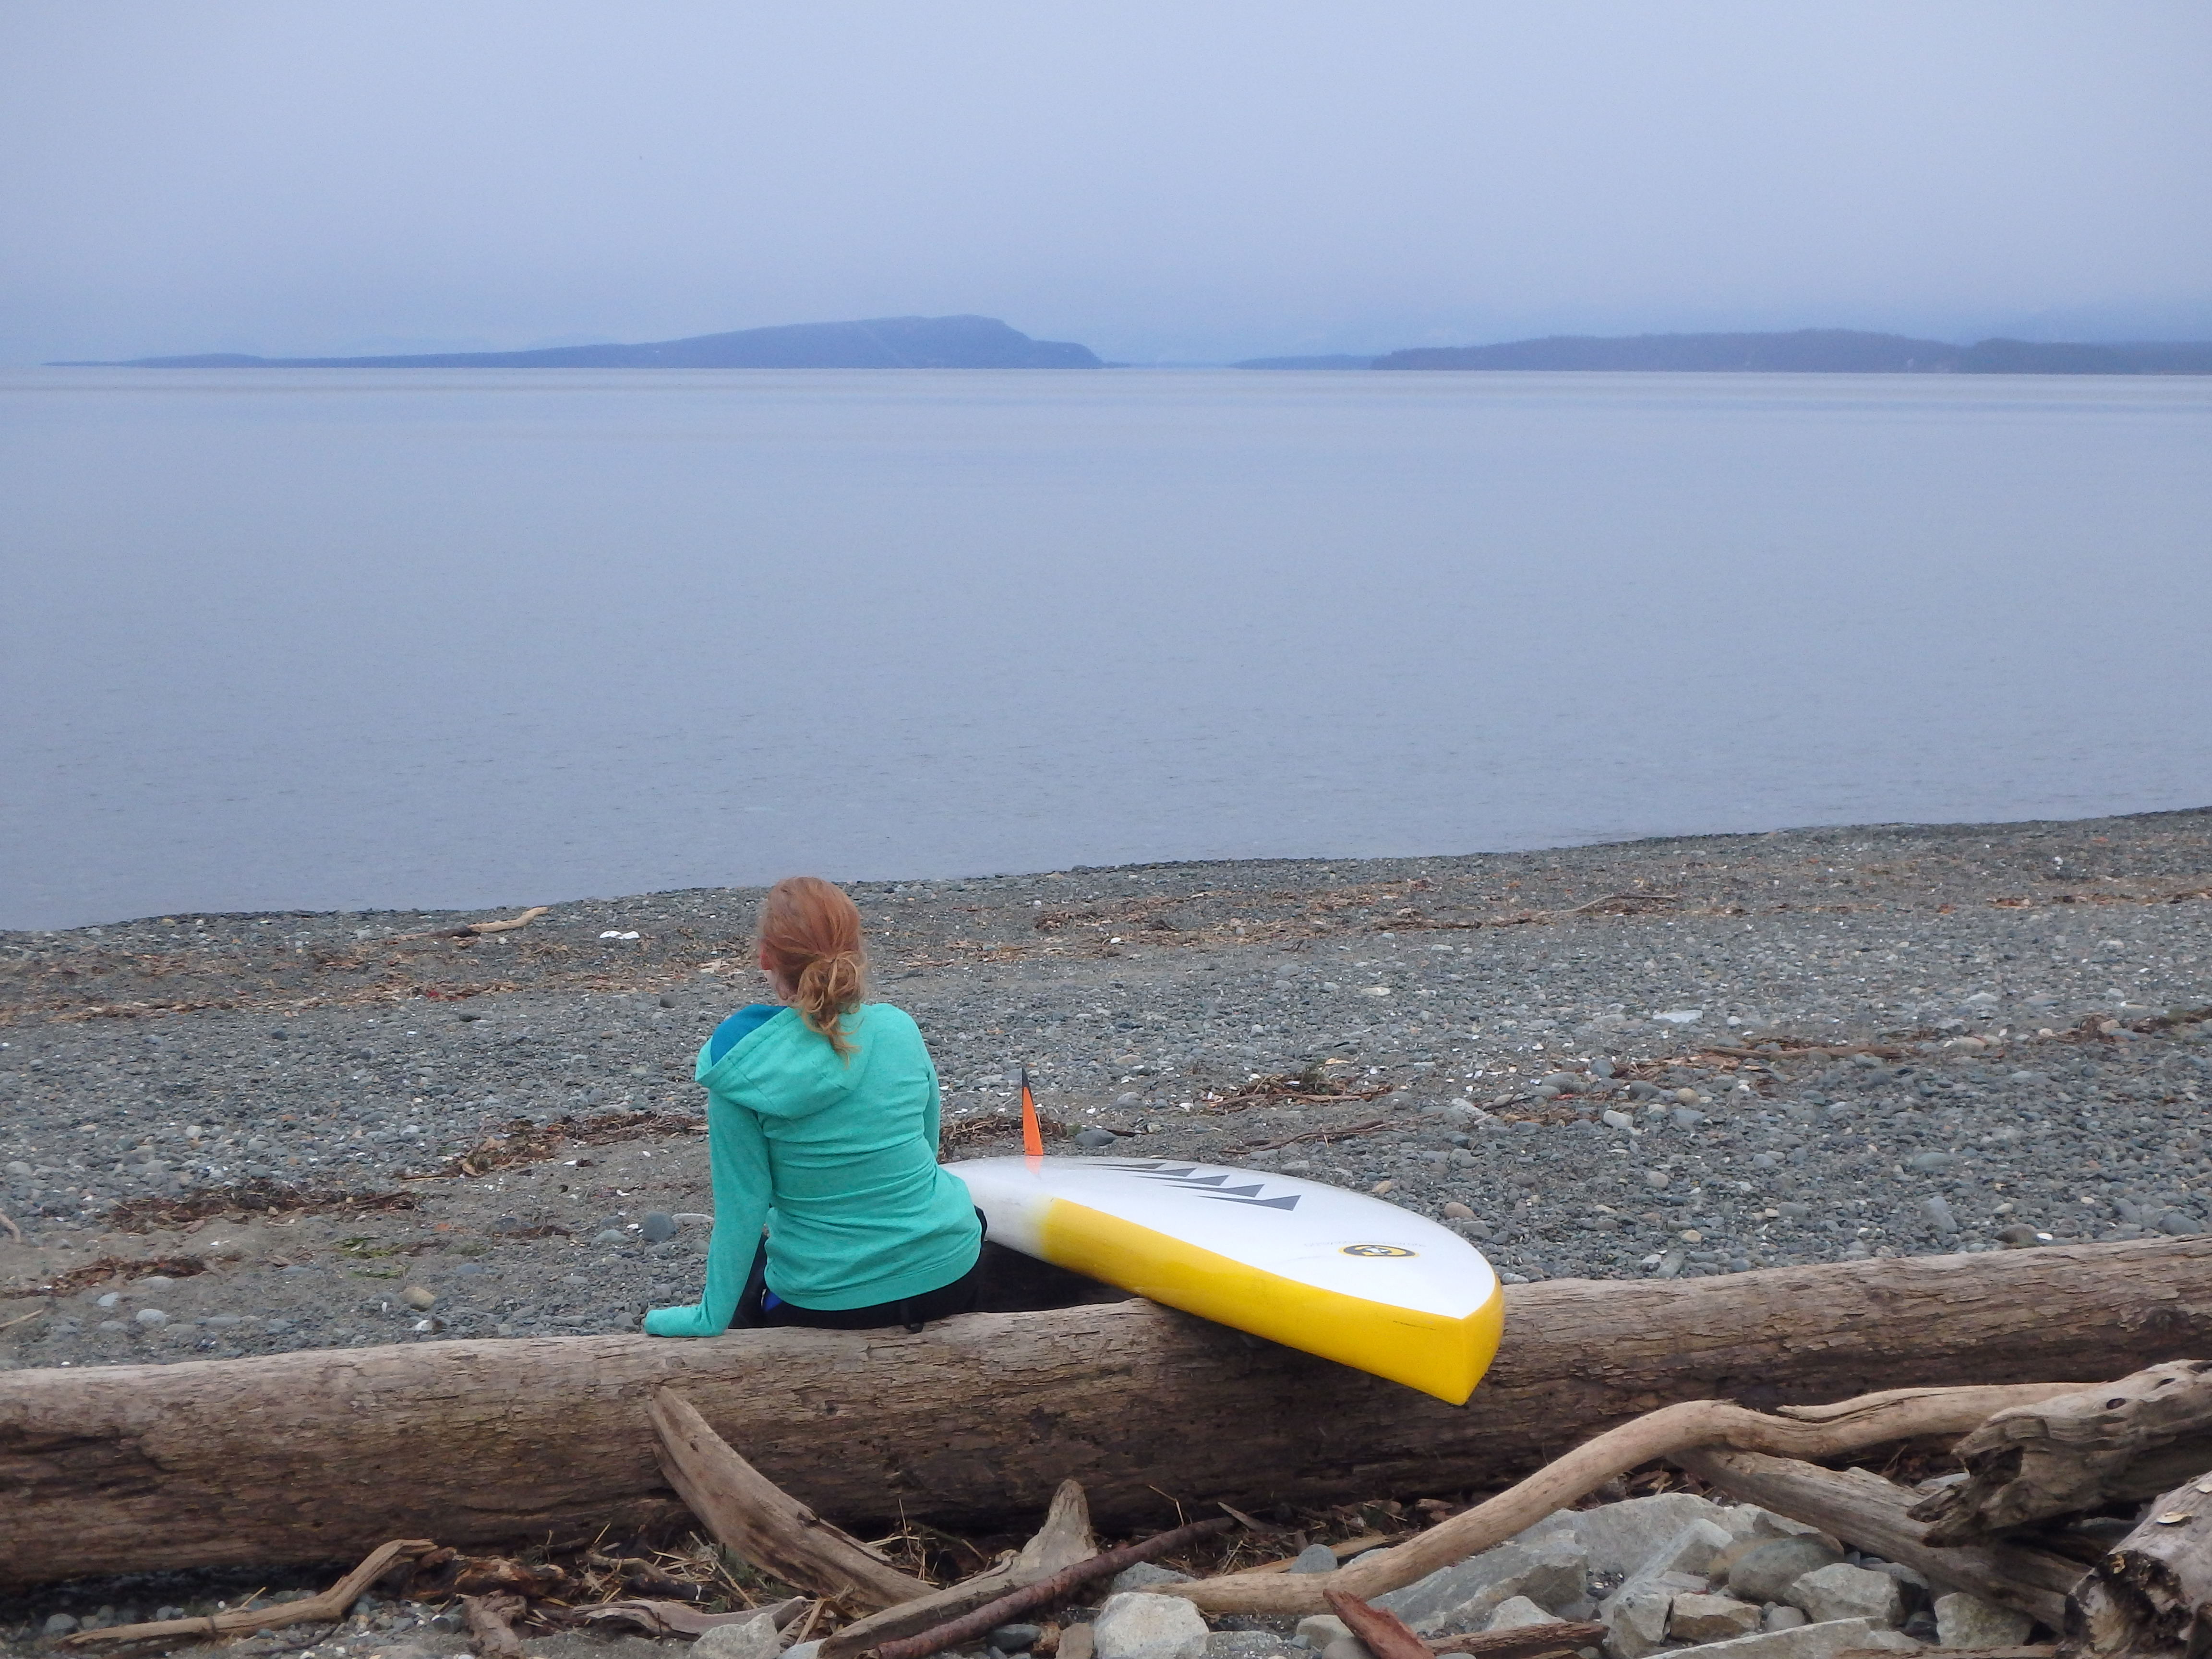 Sitting and looking at the ocean with a stand up paddle board.